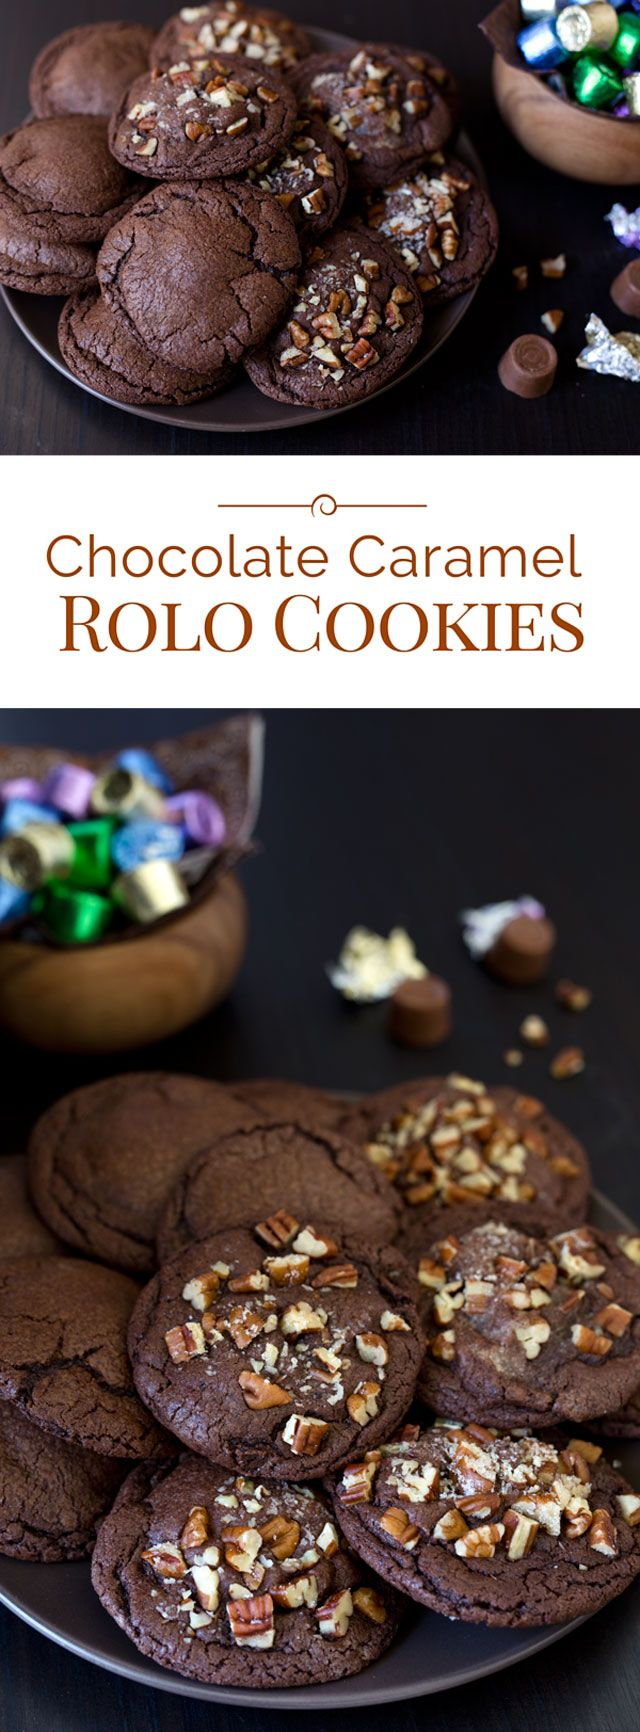 These prize-winning Chocolate Caramel Rolo Cookies are a family favorite. They're an easy to make, rich, fudgy chocolate cookie stuffed with a Rolo candy.